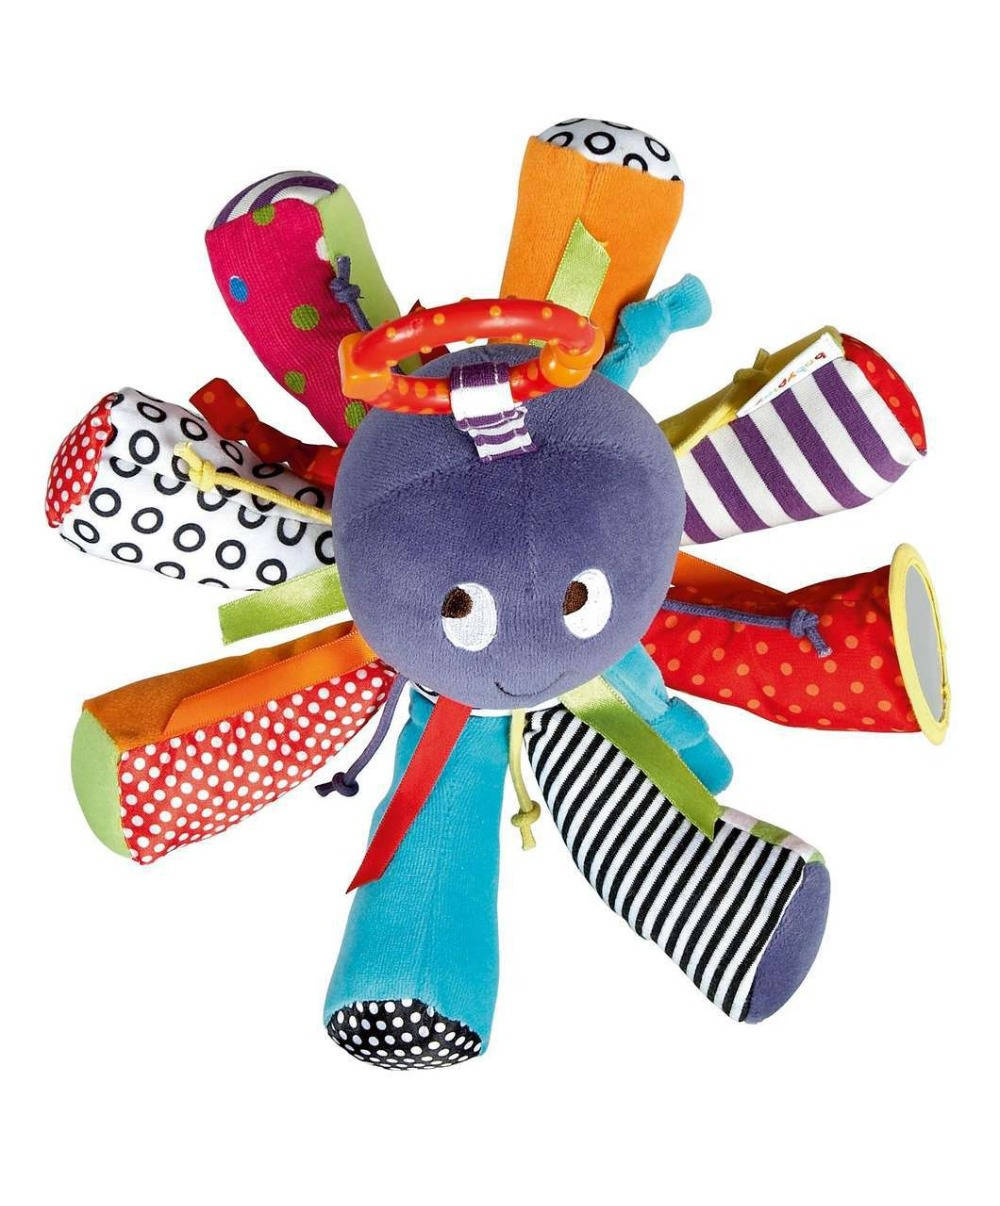 Toys For 20 : Octopus toy images